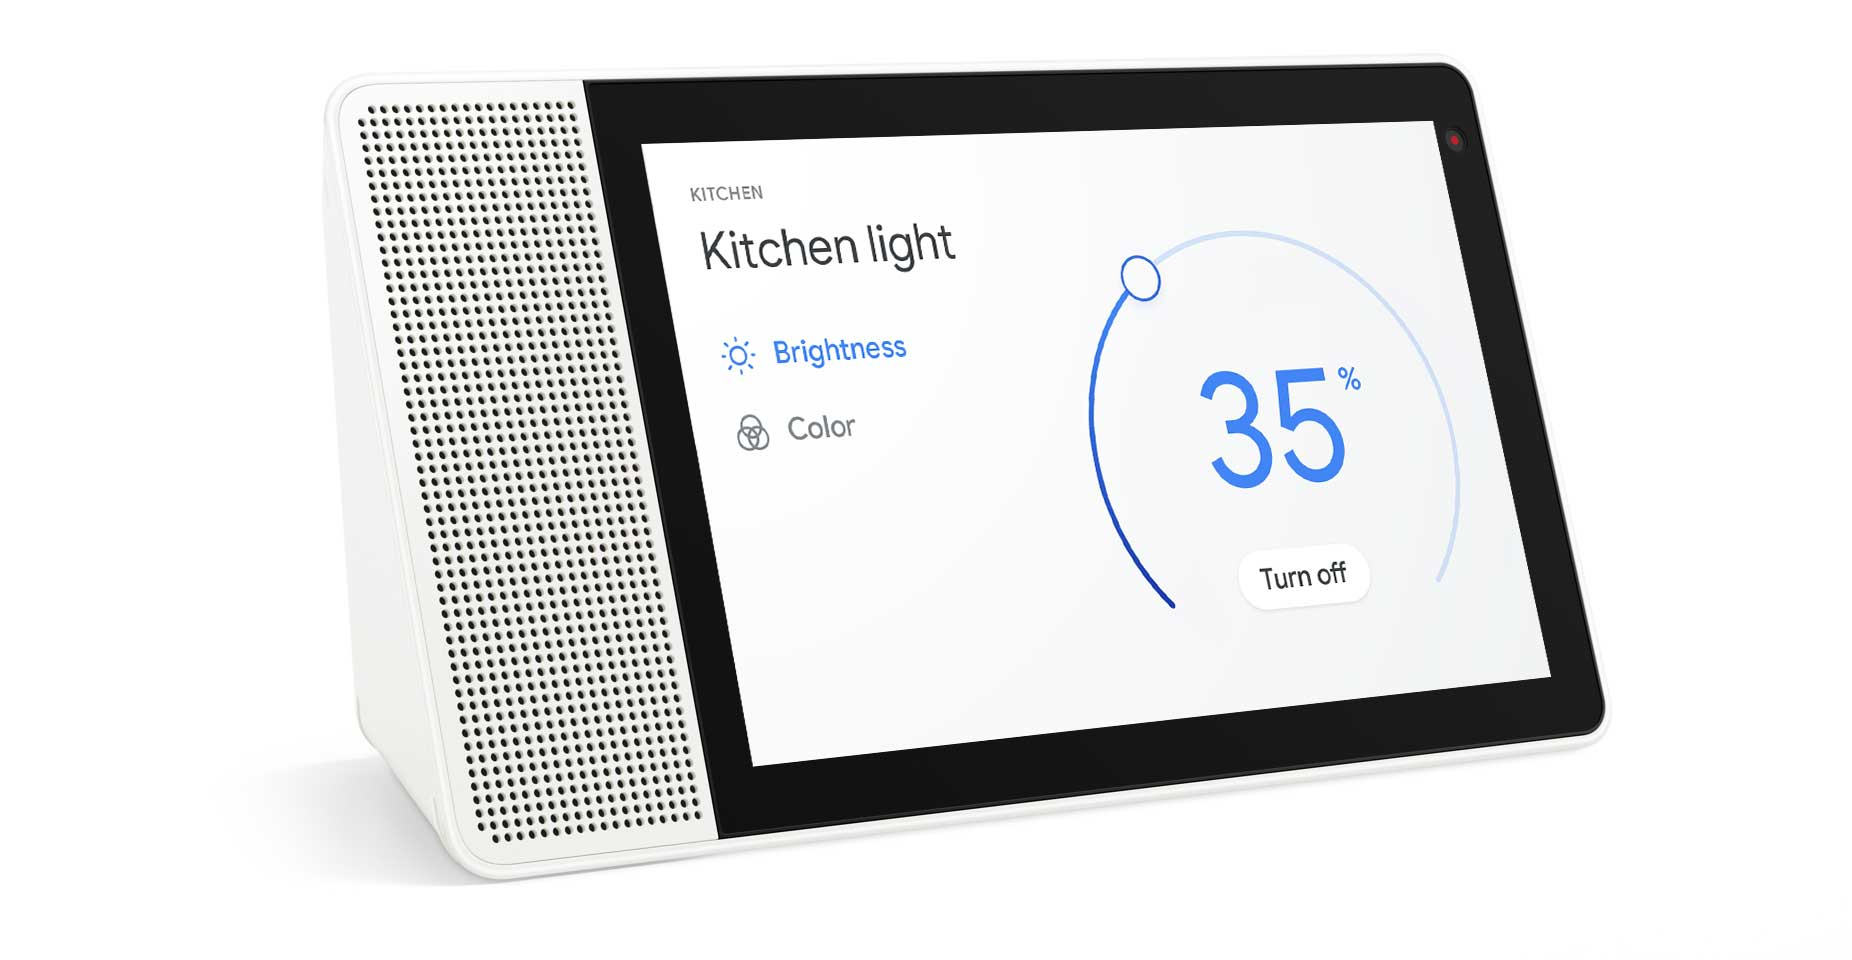 Hey Google, dim the kitchen lights